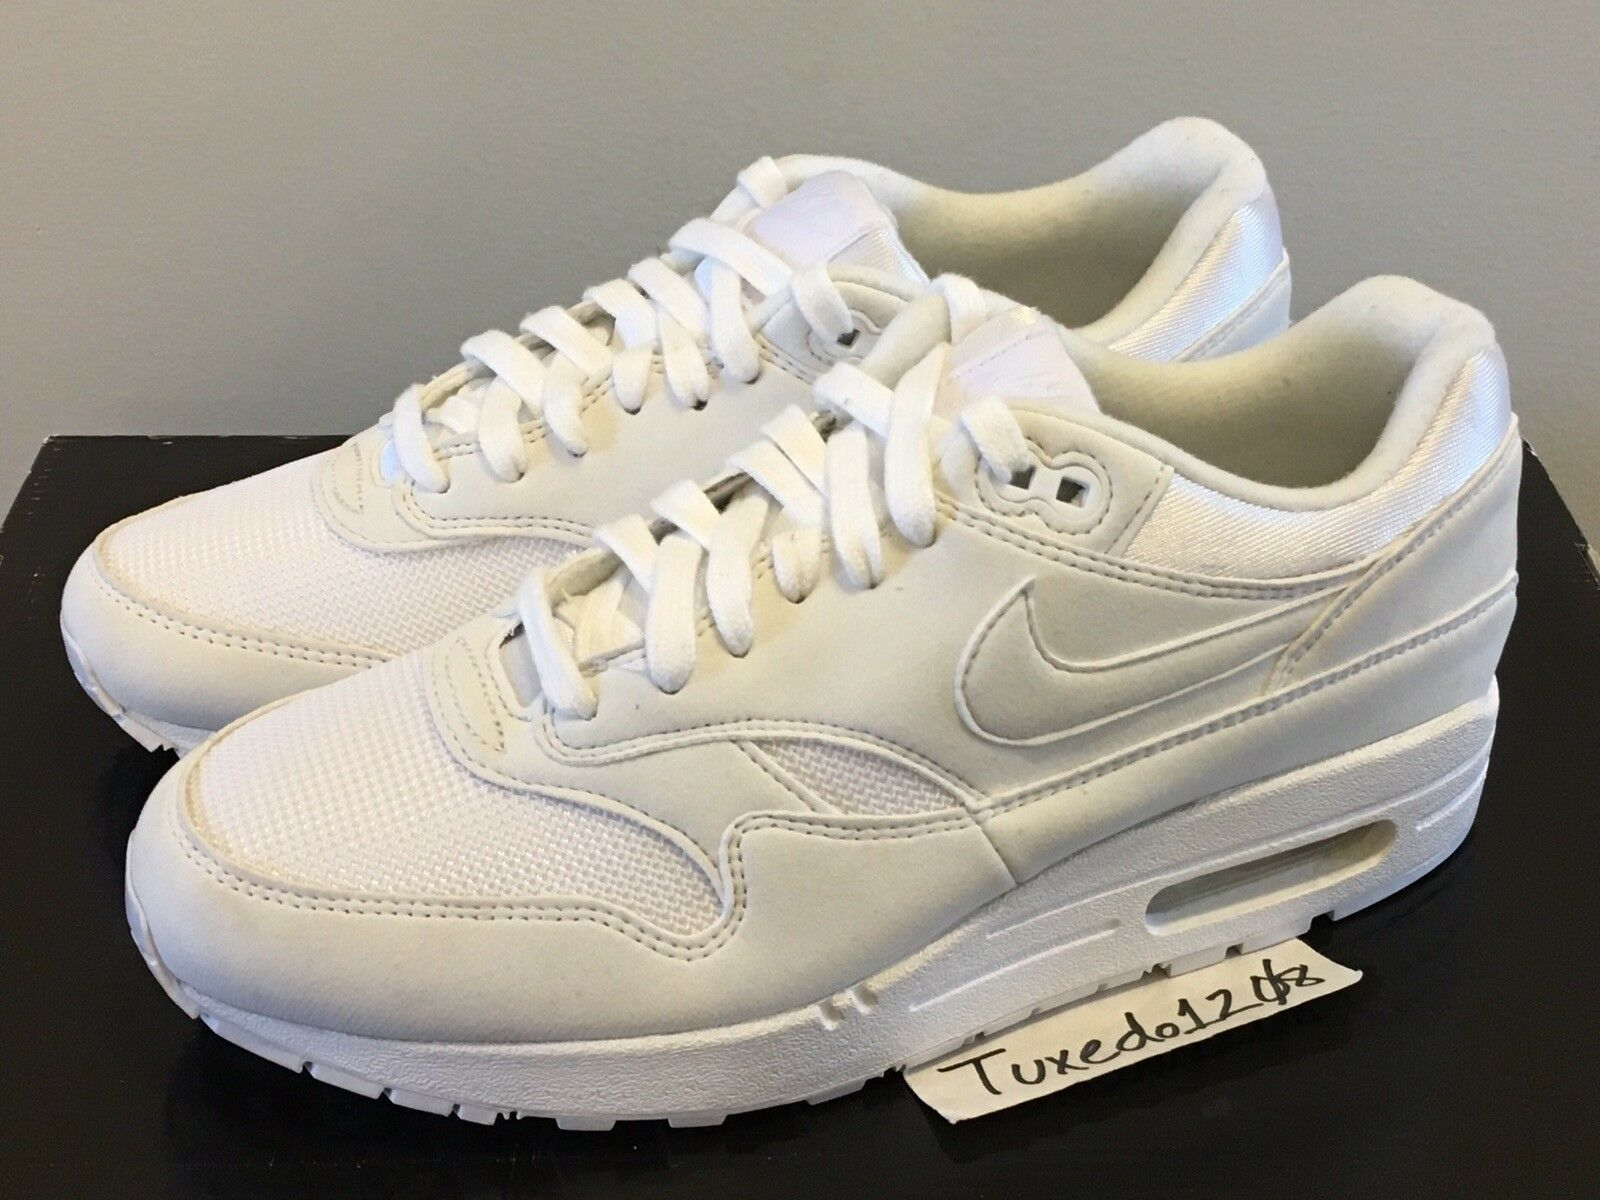 New  Women's Nike Air Max 1 sz8 Triple White Suede 90 95 97 trainer 319986 108